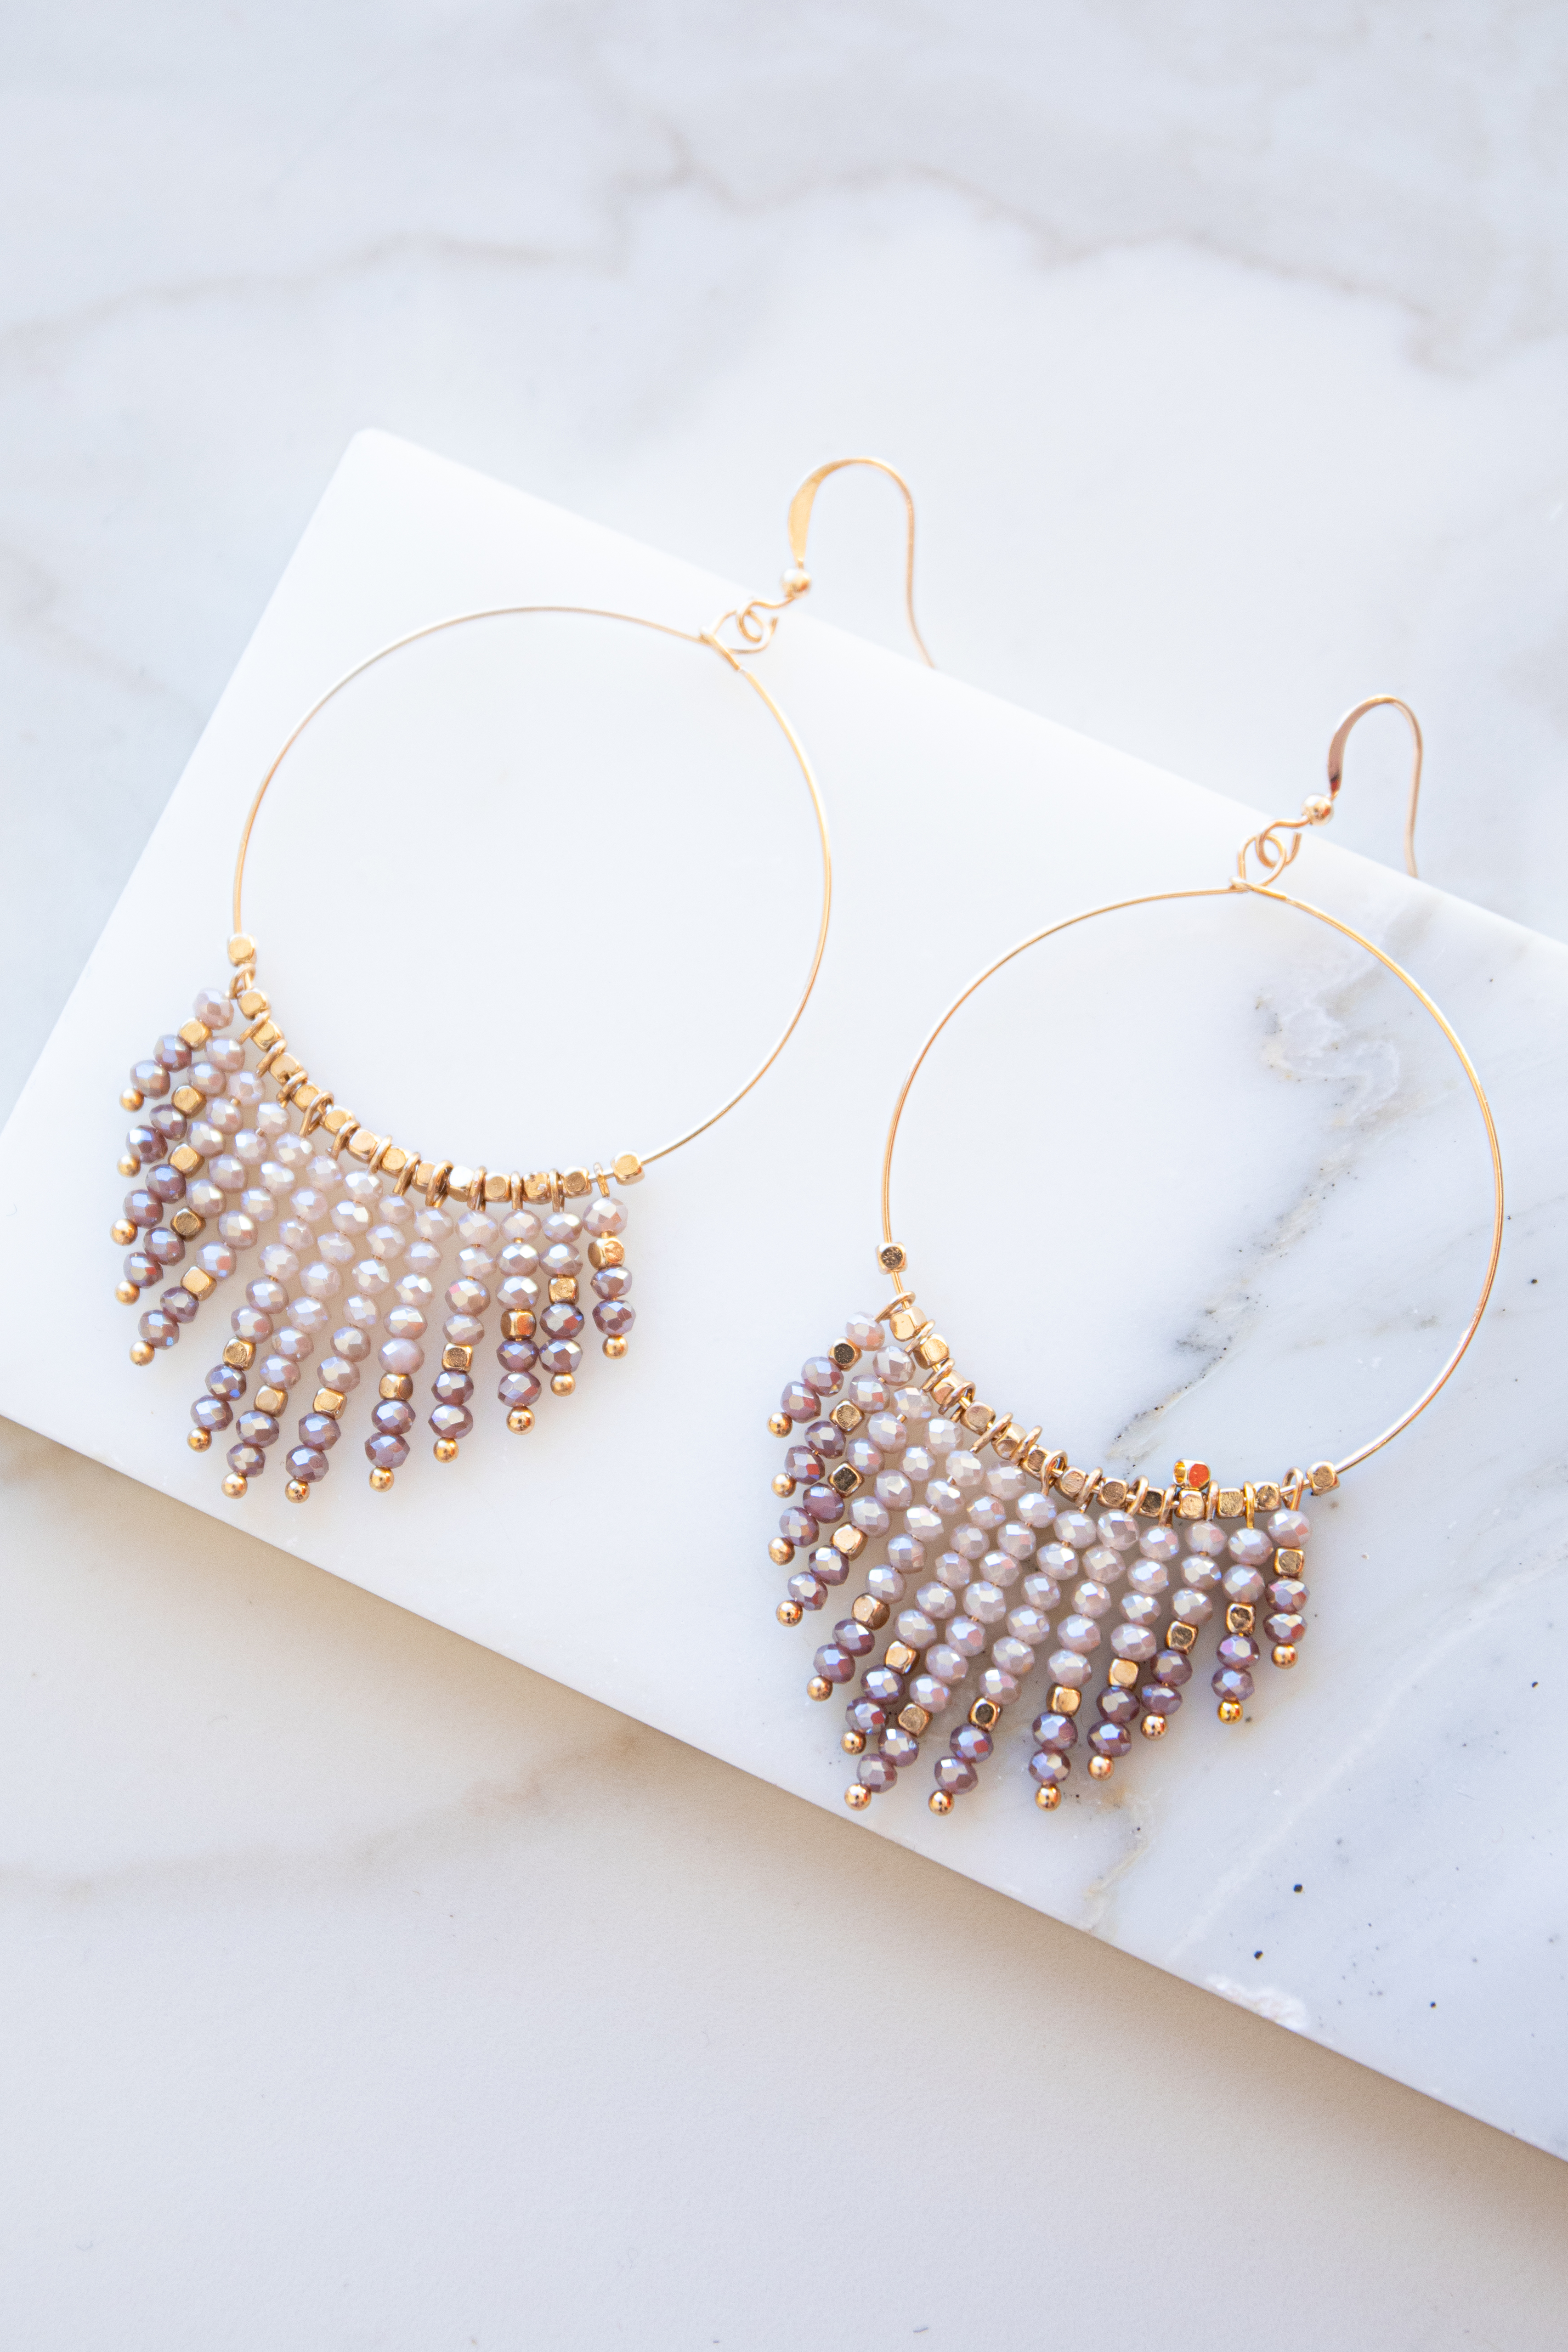 Gold Hoop Earrings with Rose and Mauve Bead Dangles